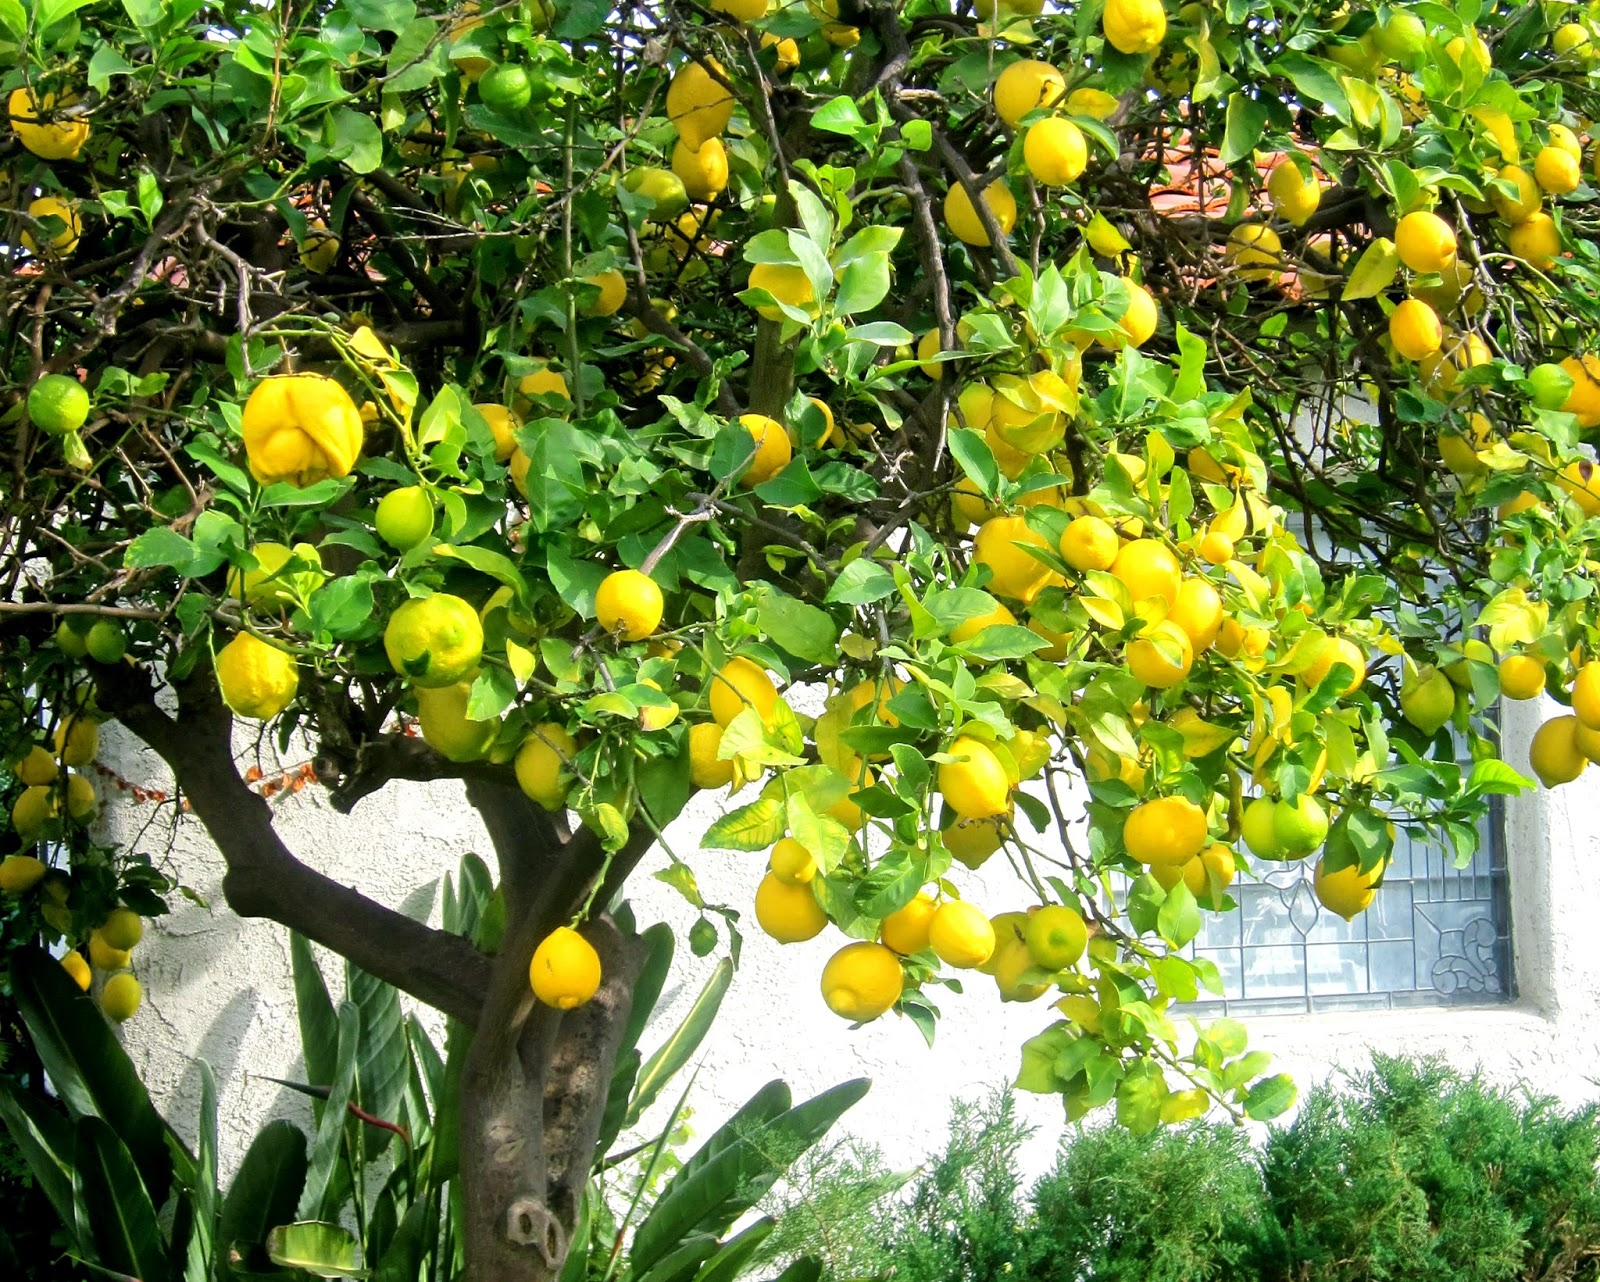 Lemon tree images